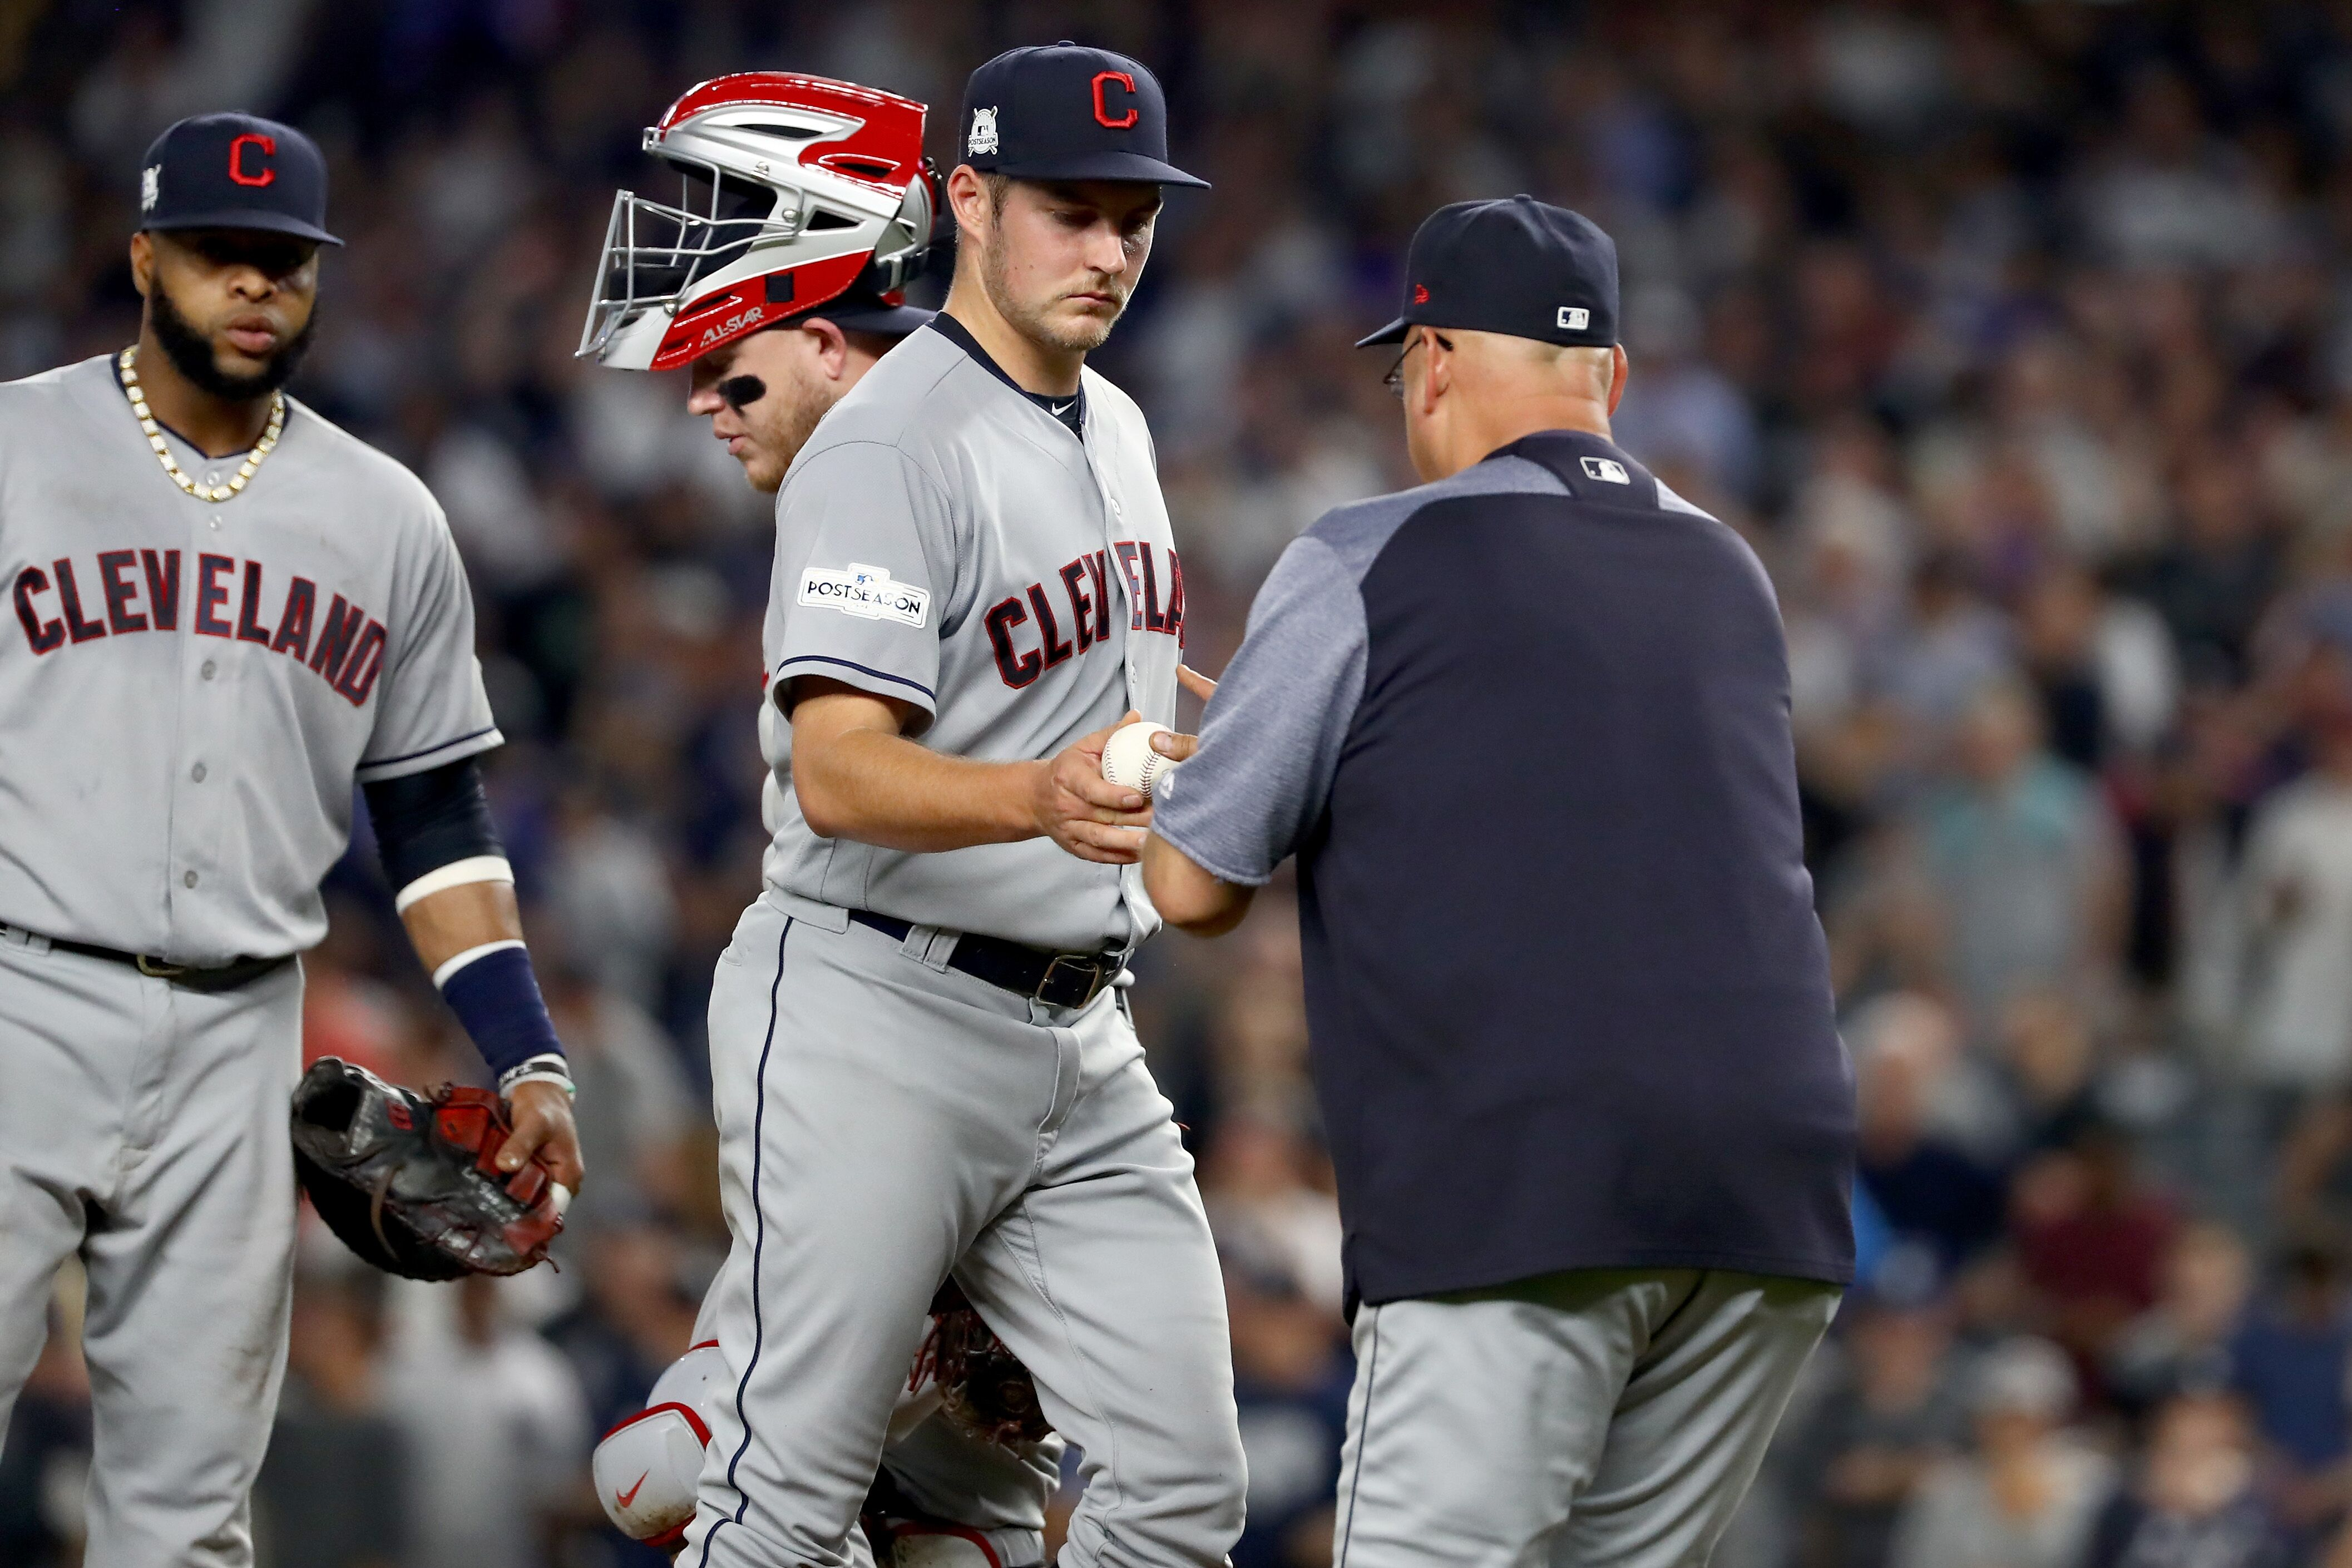 859533968-divisional-round-cleveland-indians-v-new-york-yankees-game-four.jpg